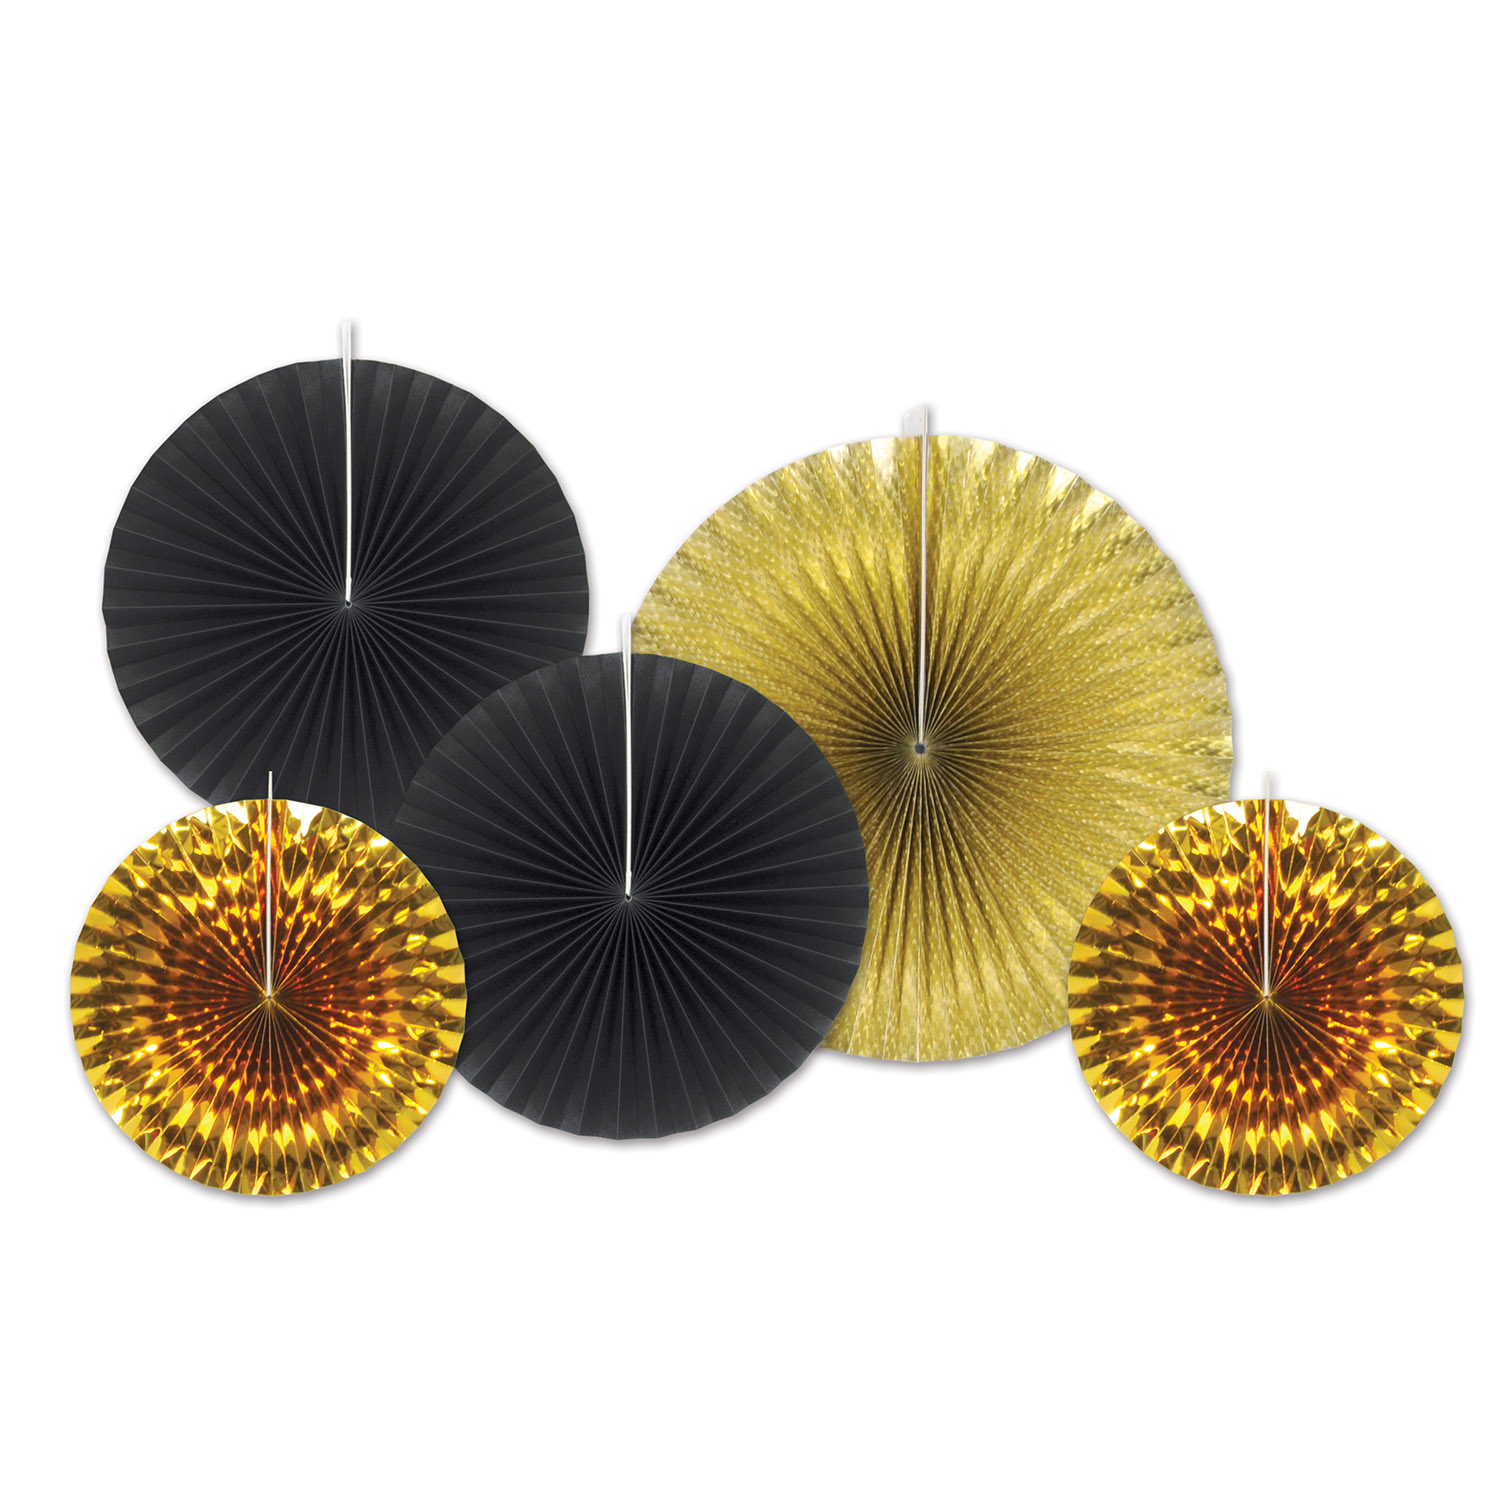 Assorted sized paper and foiled fans in gold and black.